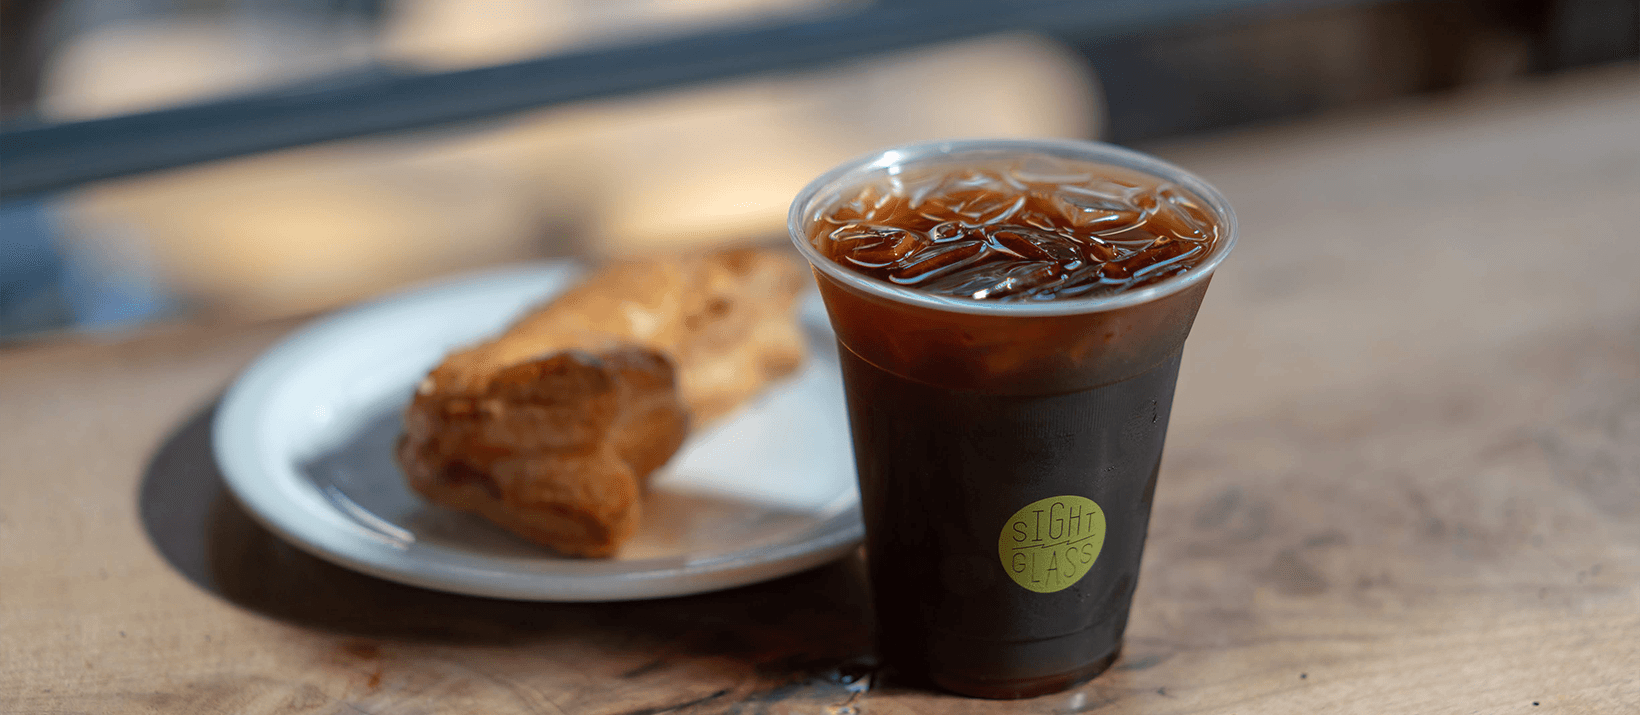 Introducing: Sightglass Cold!